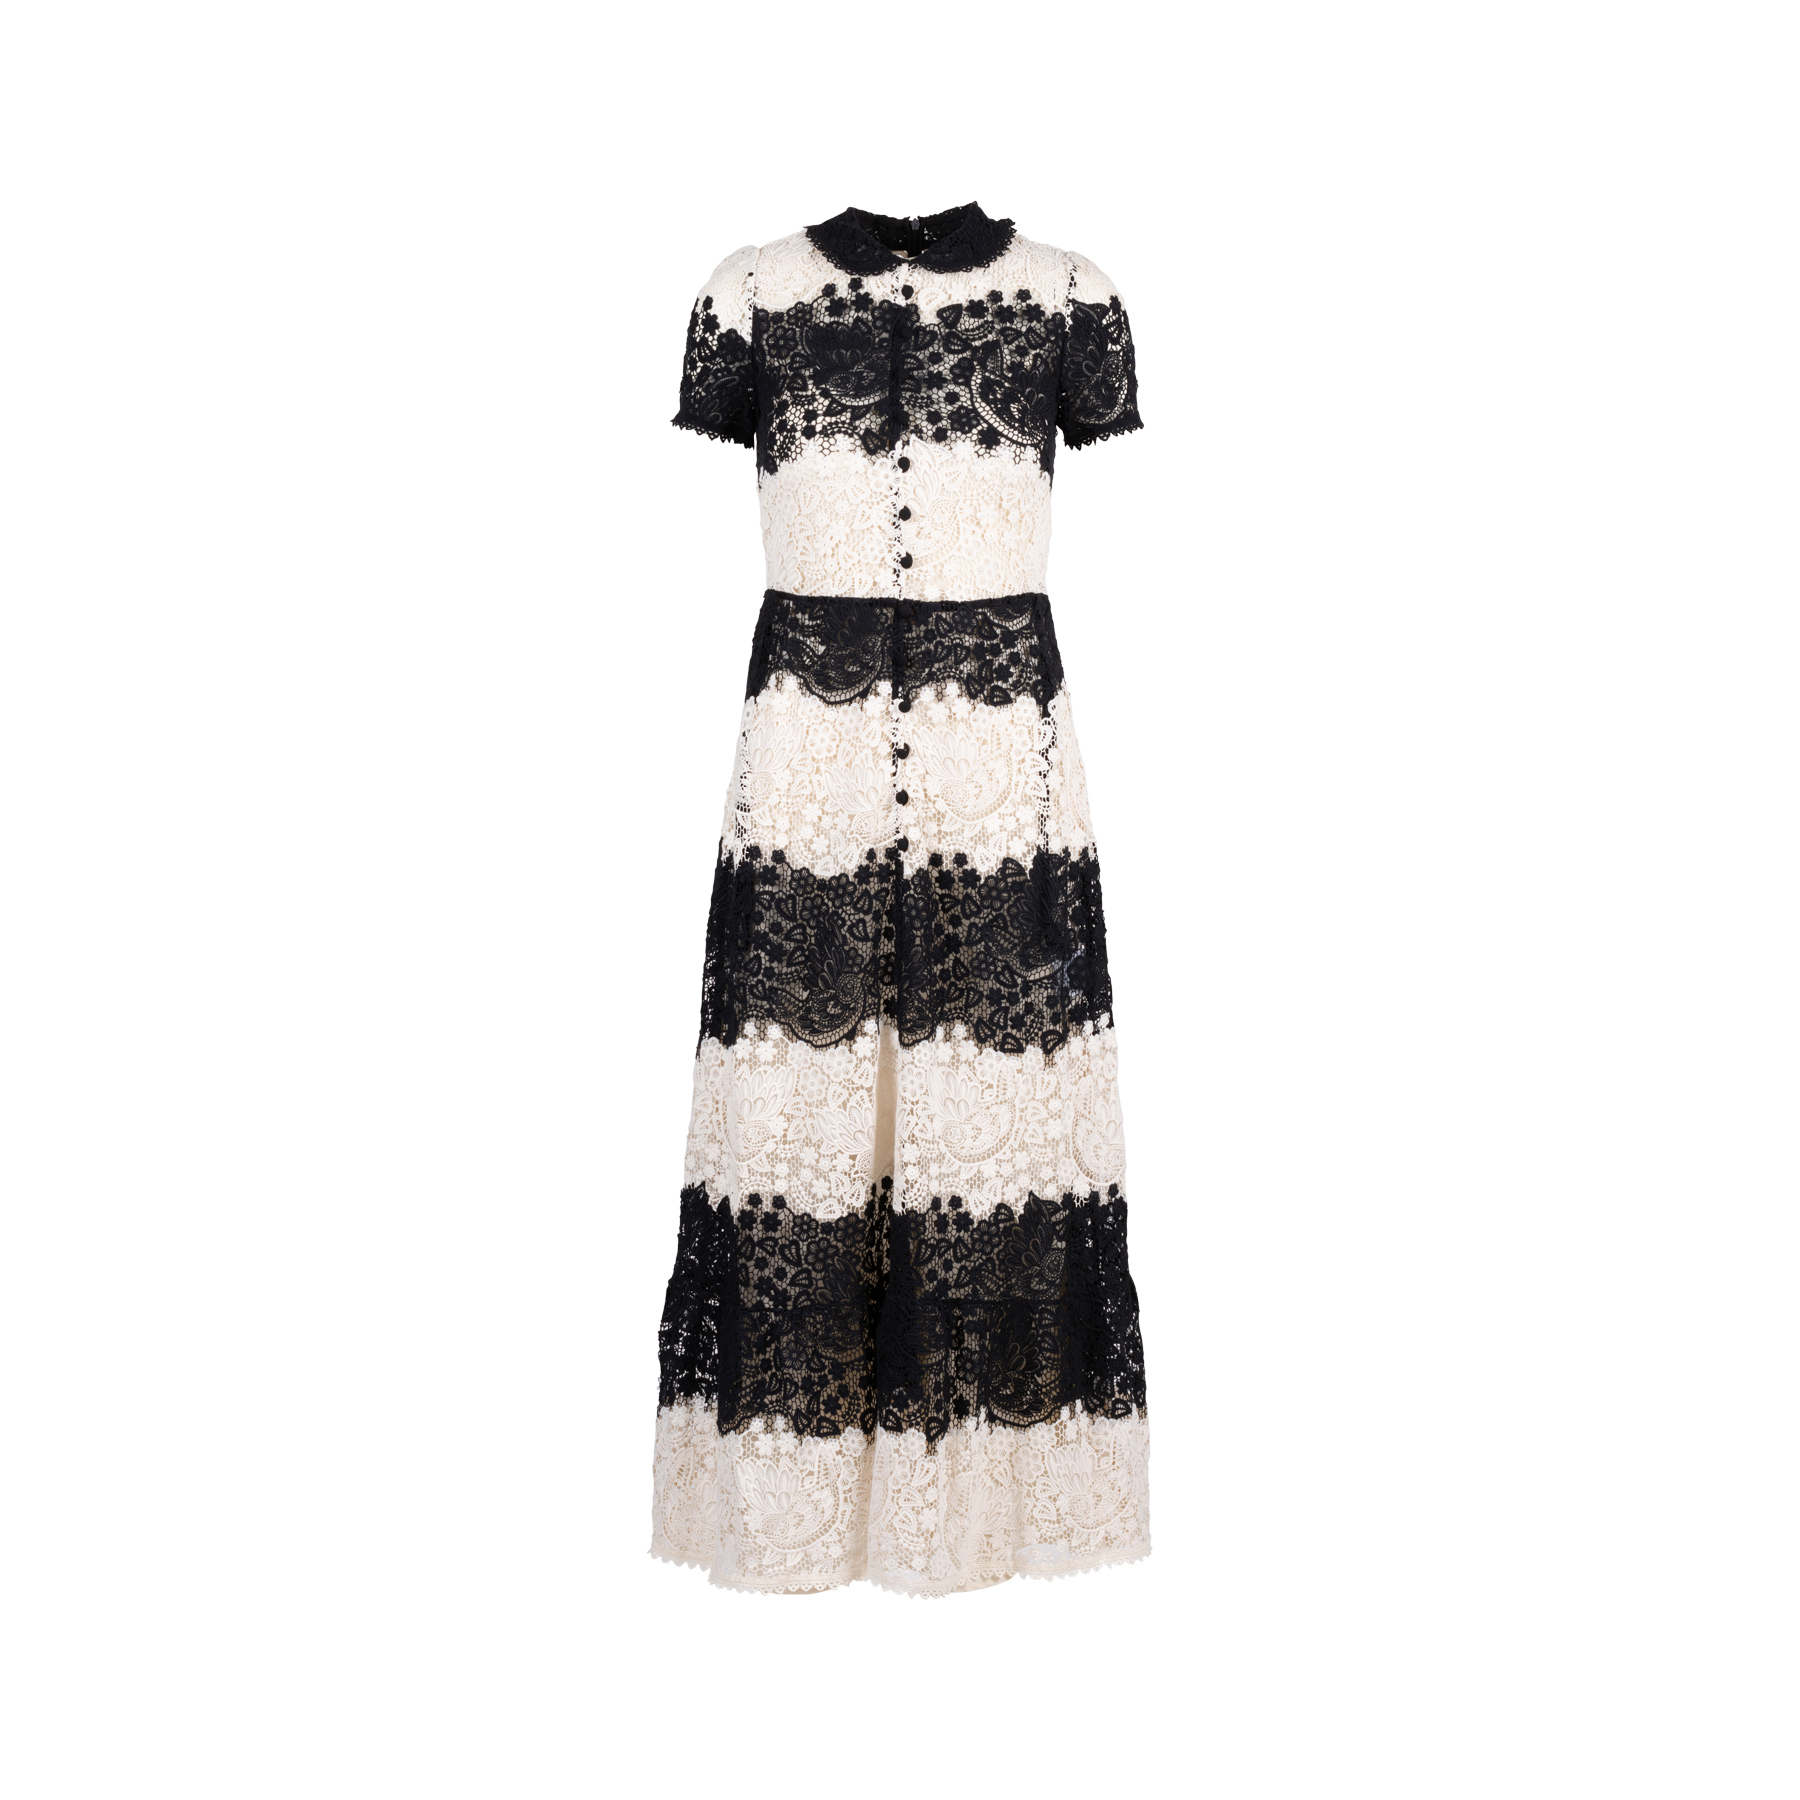 1654747a55d Authentic Second Hand RED Valentino Floral Lace Crochet Dress  (PSS-414-00009)